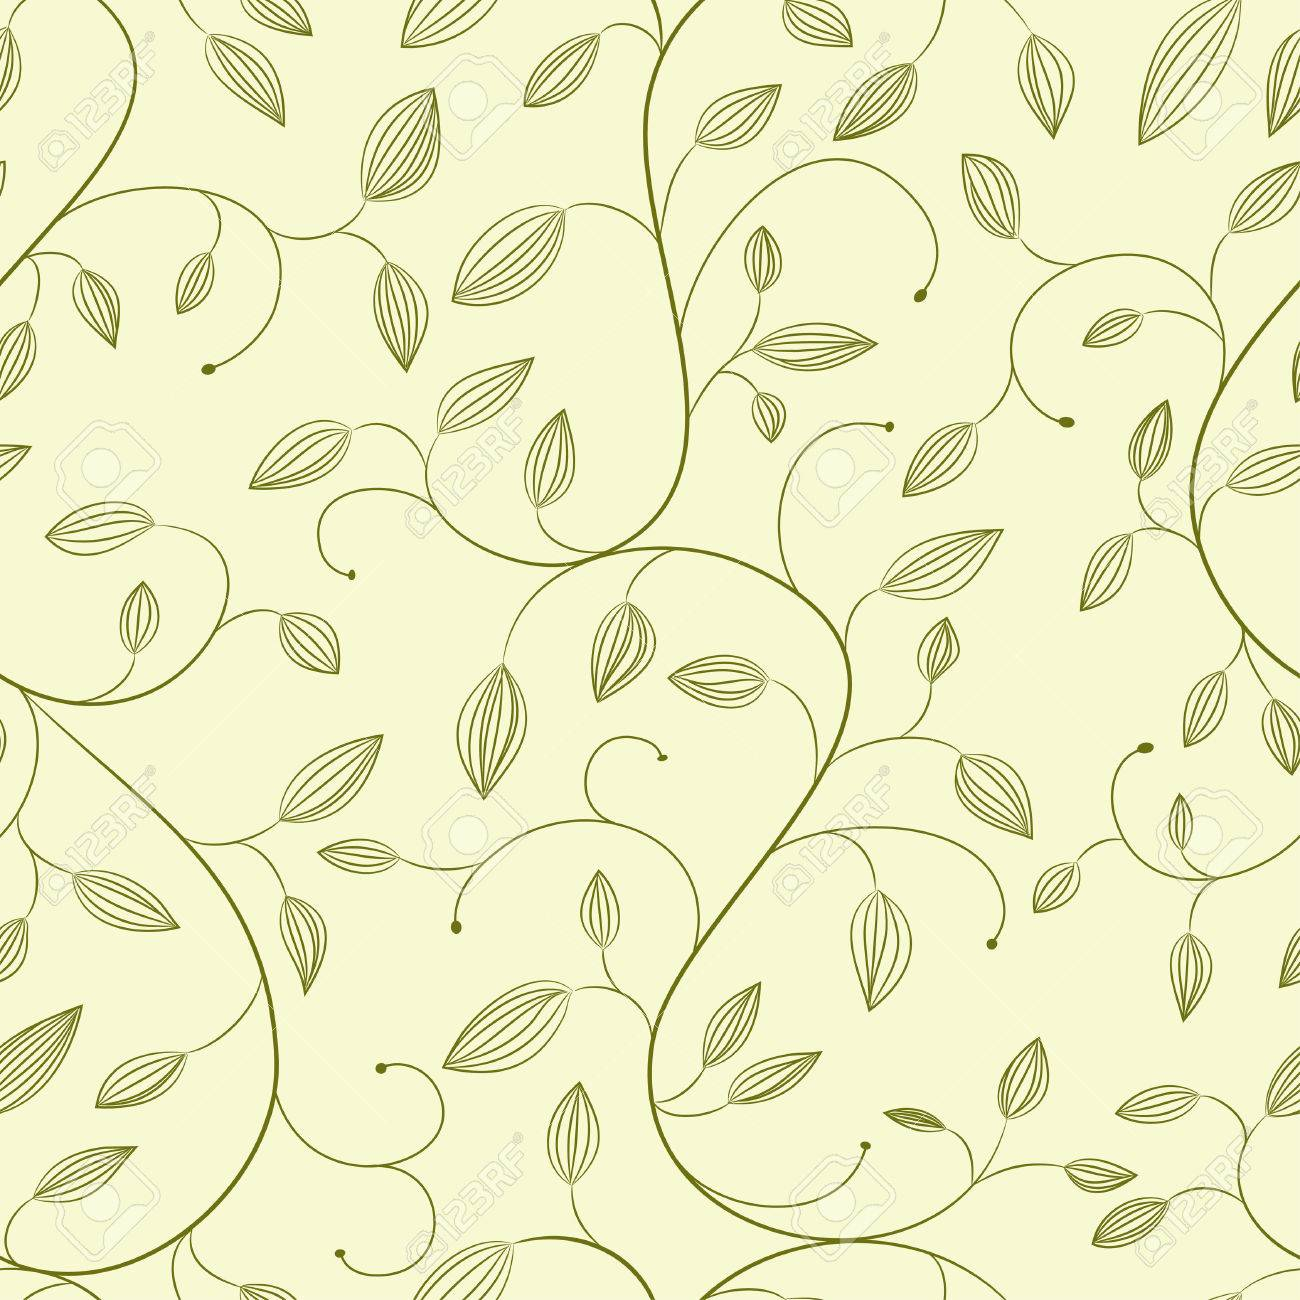 tree seamless pattern can be used for wallpaper, website background